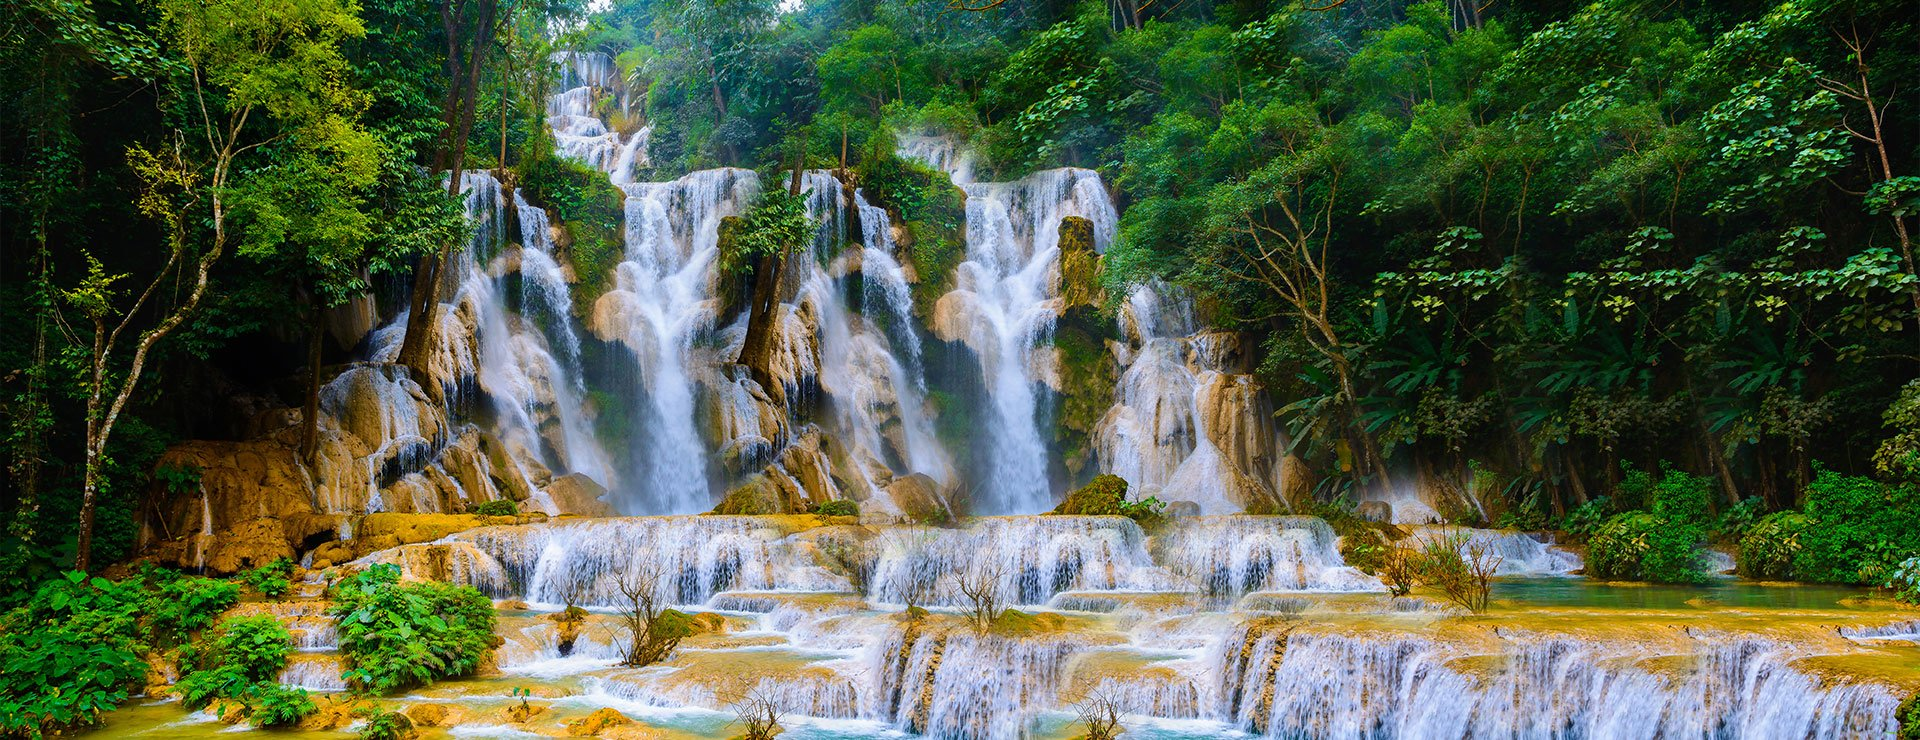 Awesome things to do in Luang Prabang, Laos